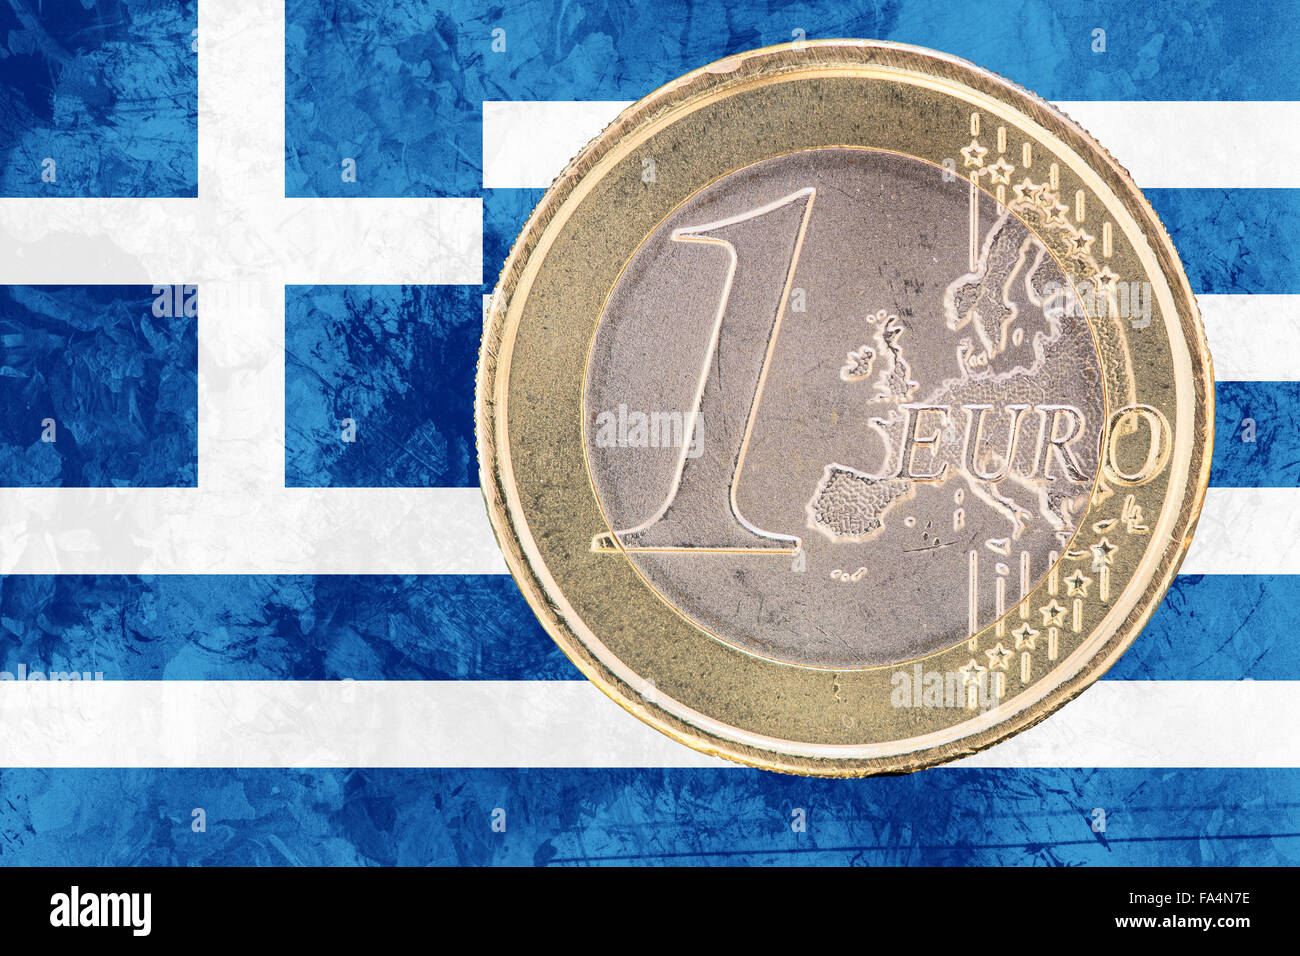 Common face of one euro coin from Greece isolated on the national greek flag as background - Stock Image